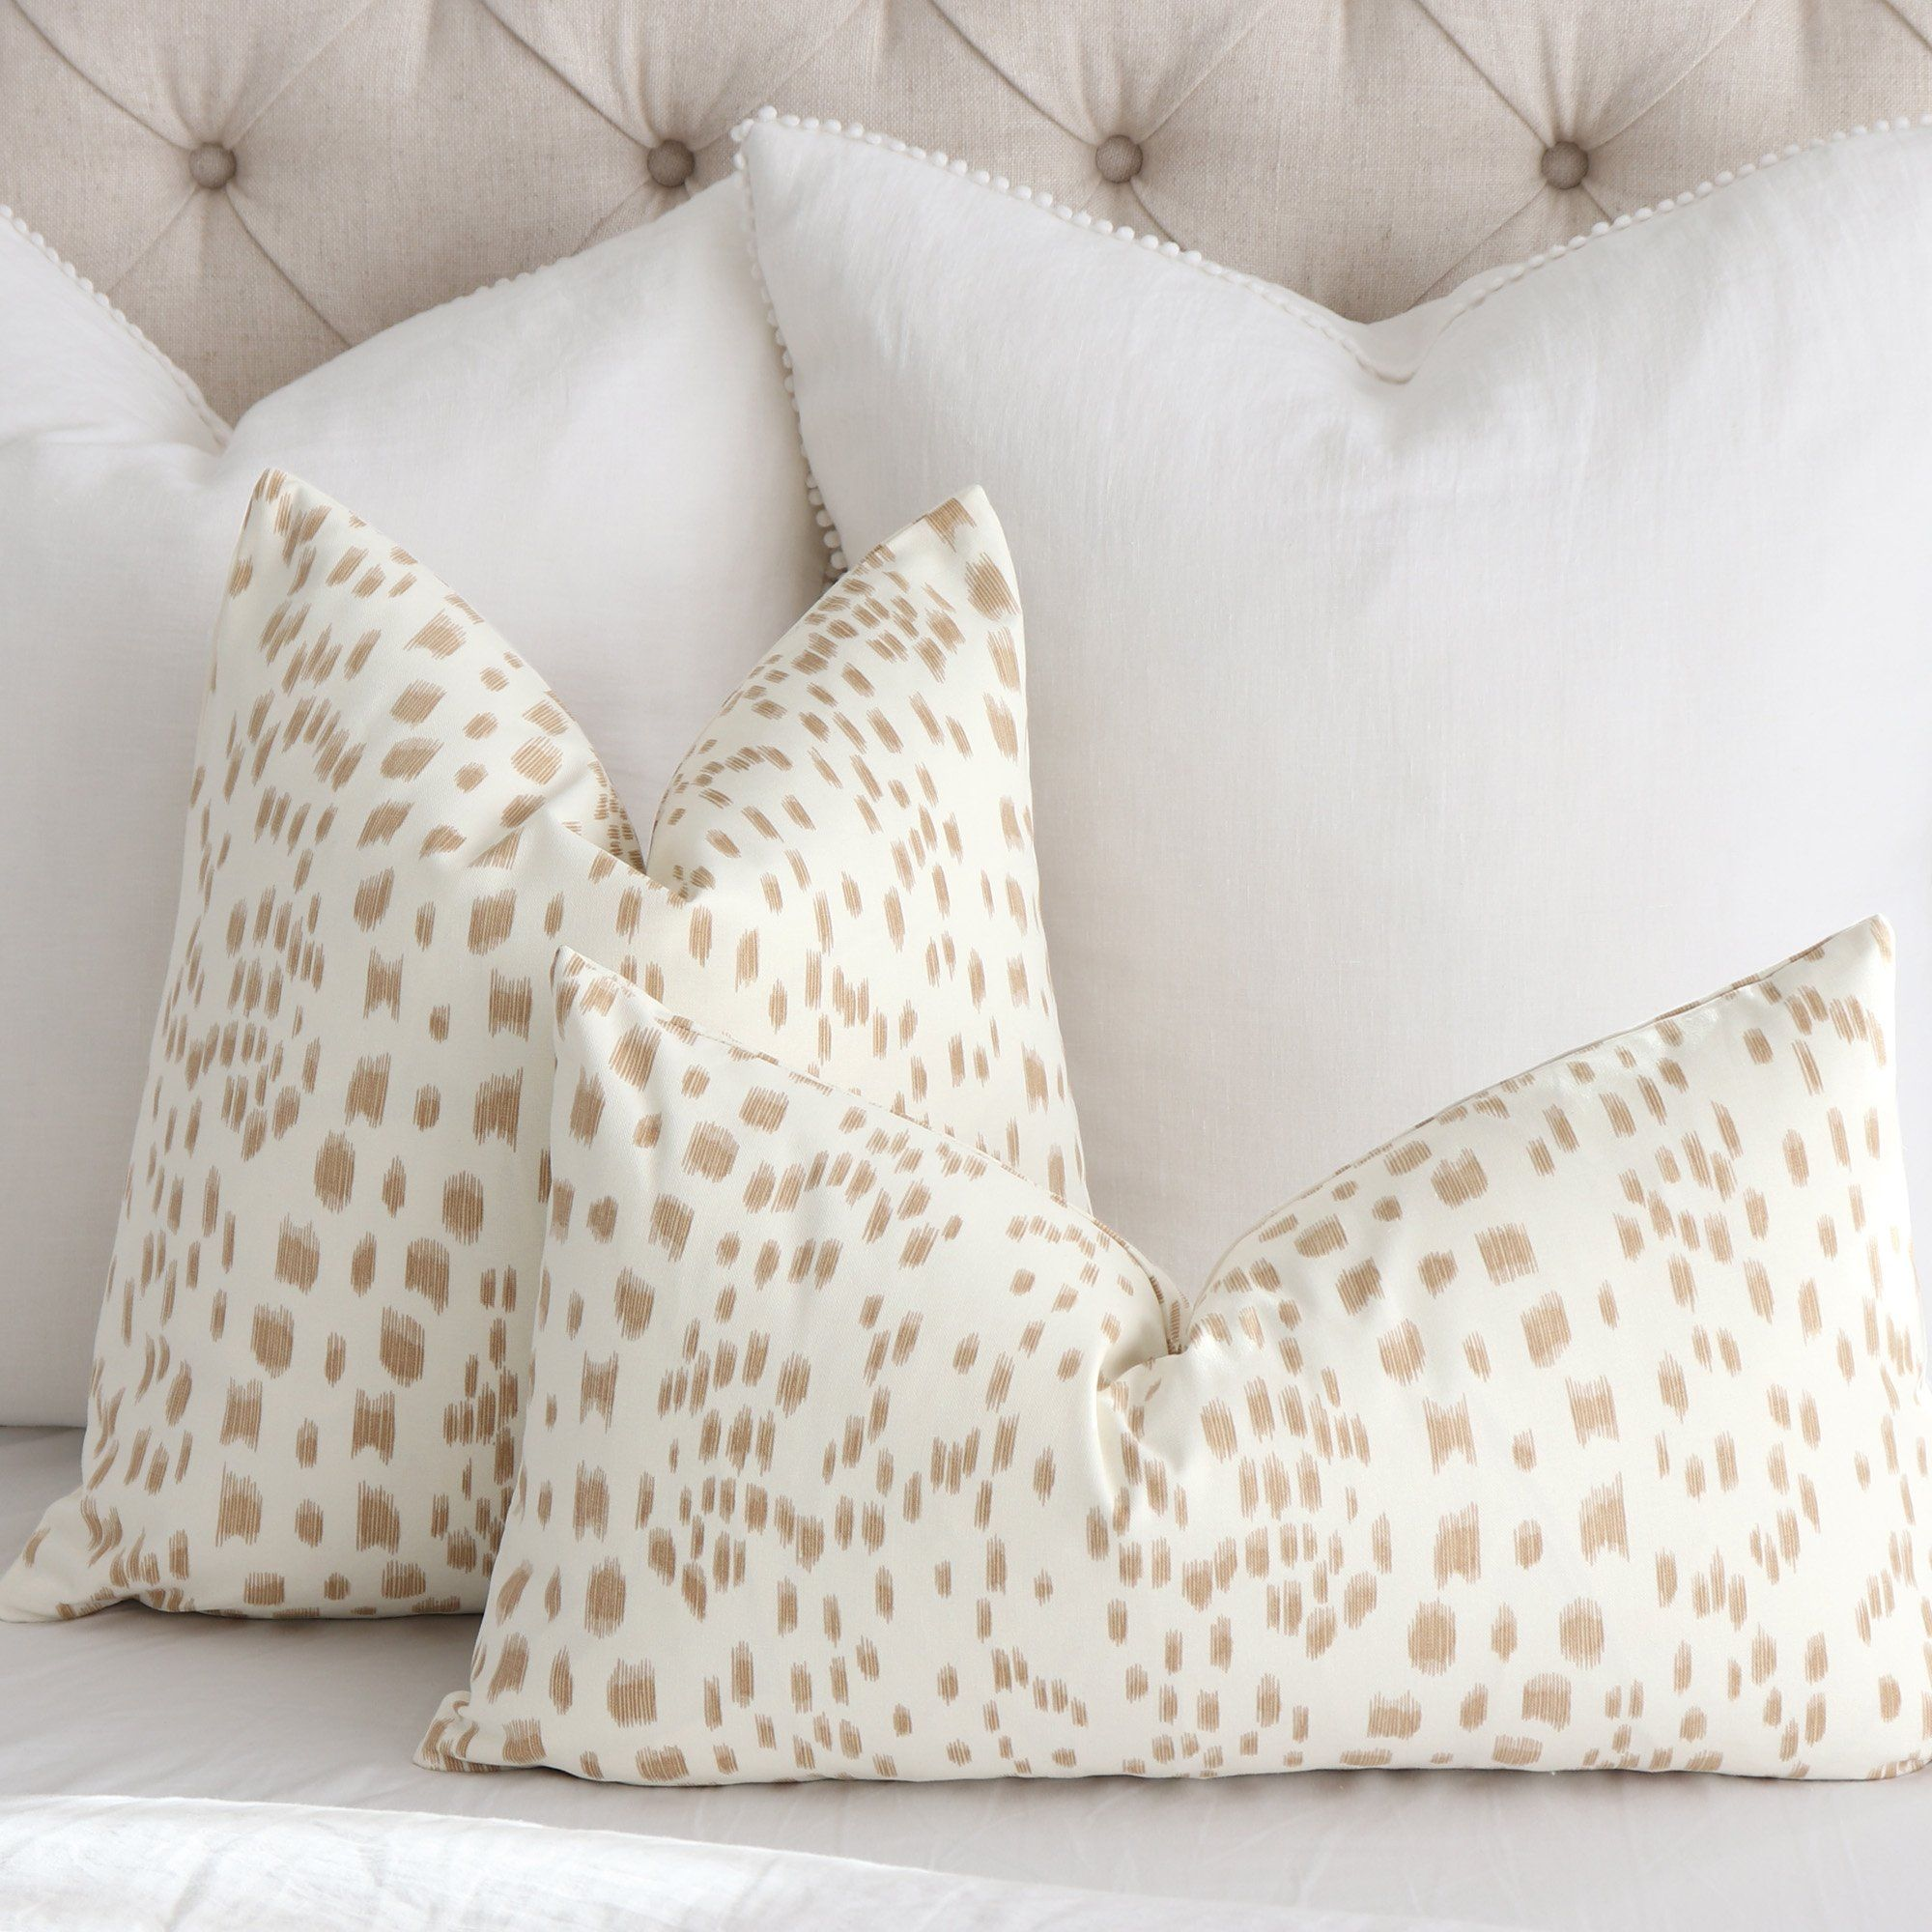 All Pillow Covers Chloe & Olive in